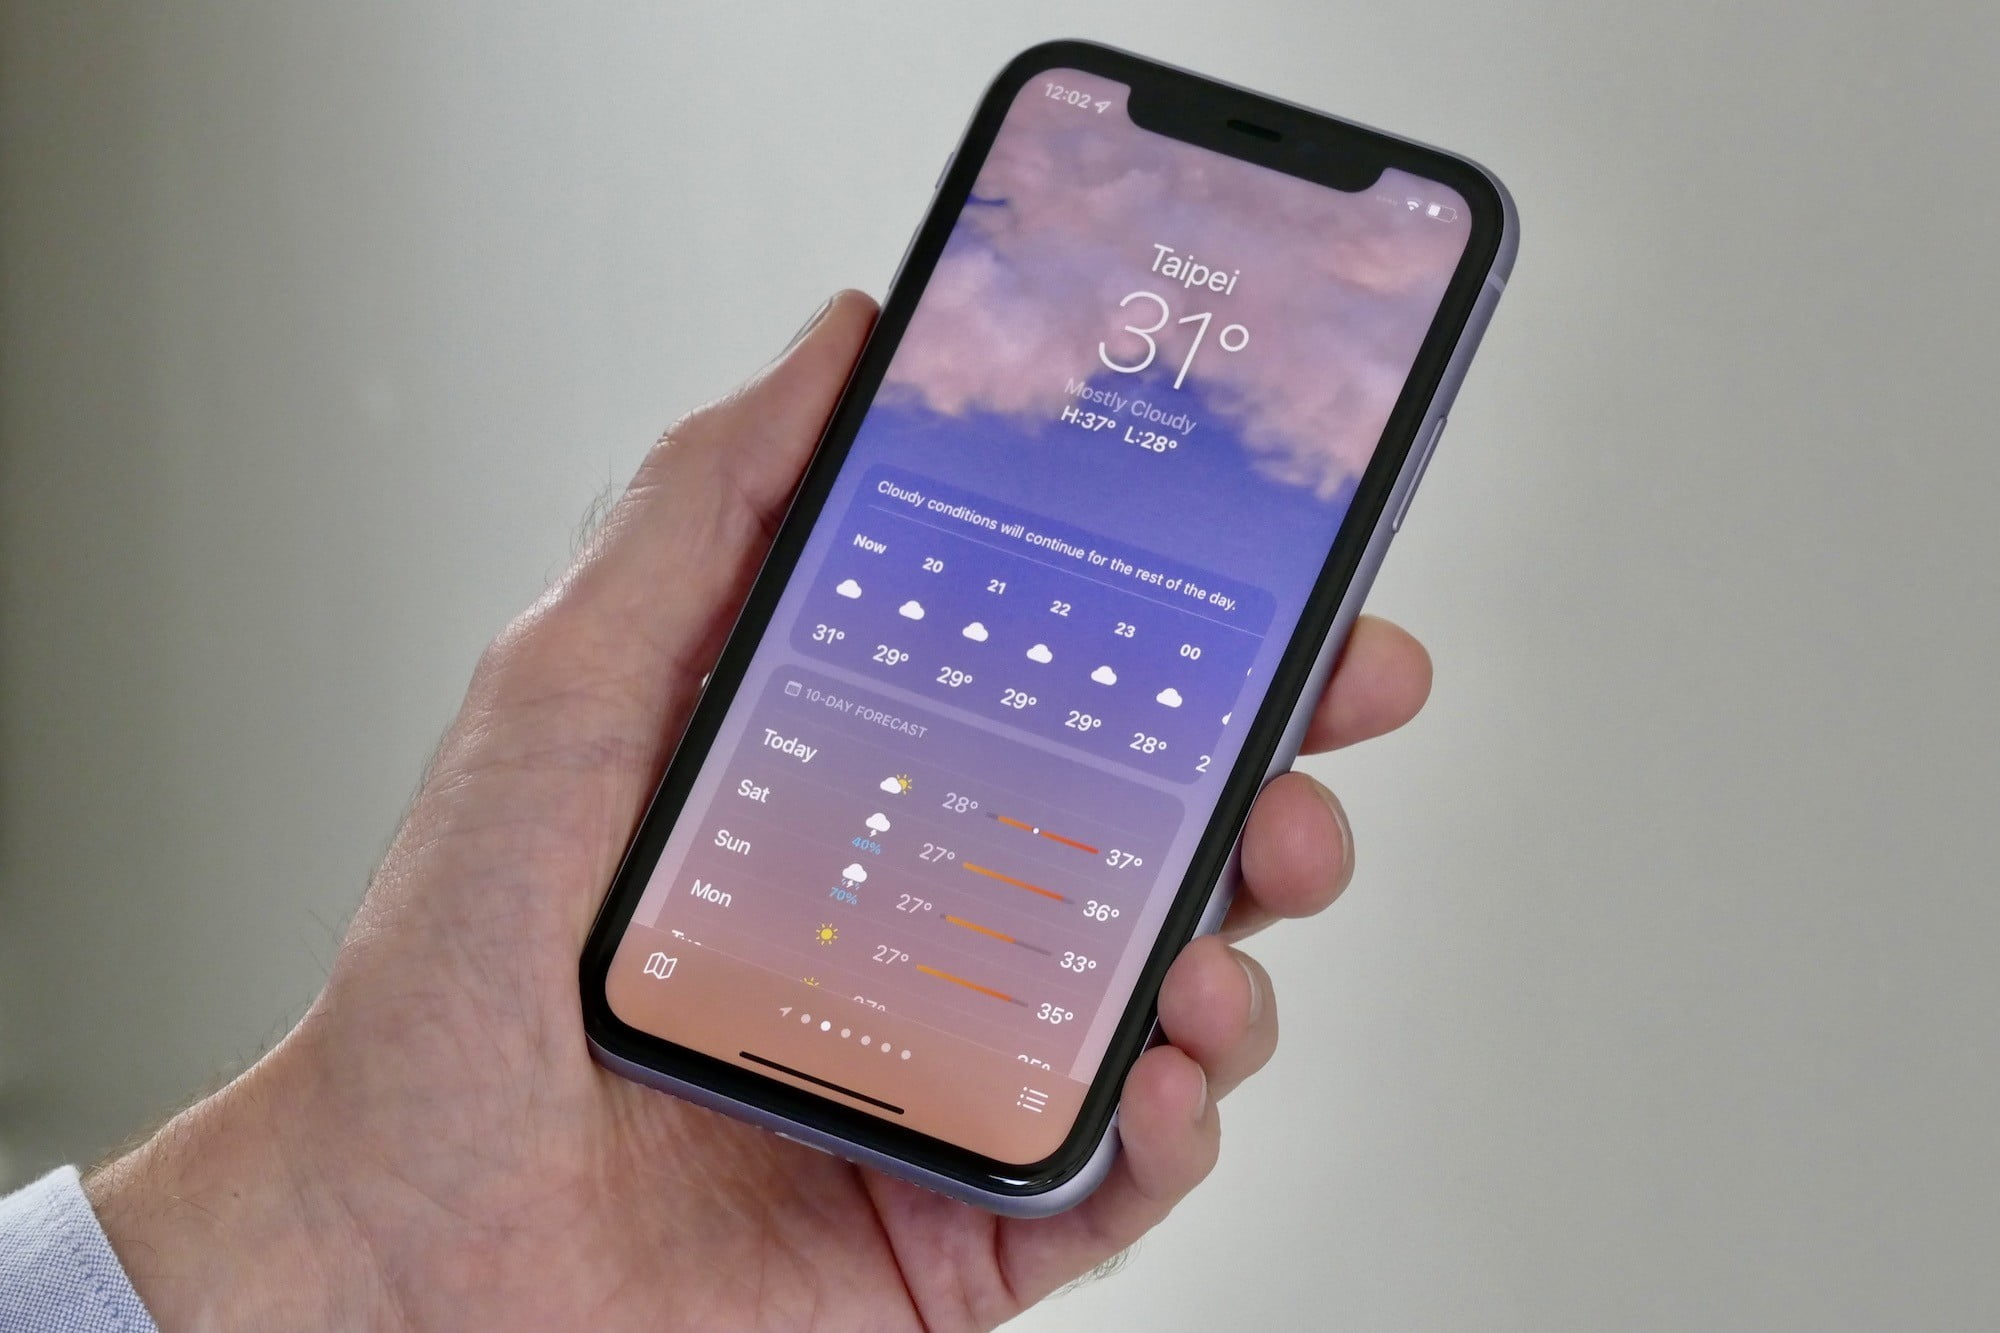 Cloudy weather showing in iOS 15's weather app